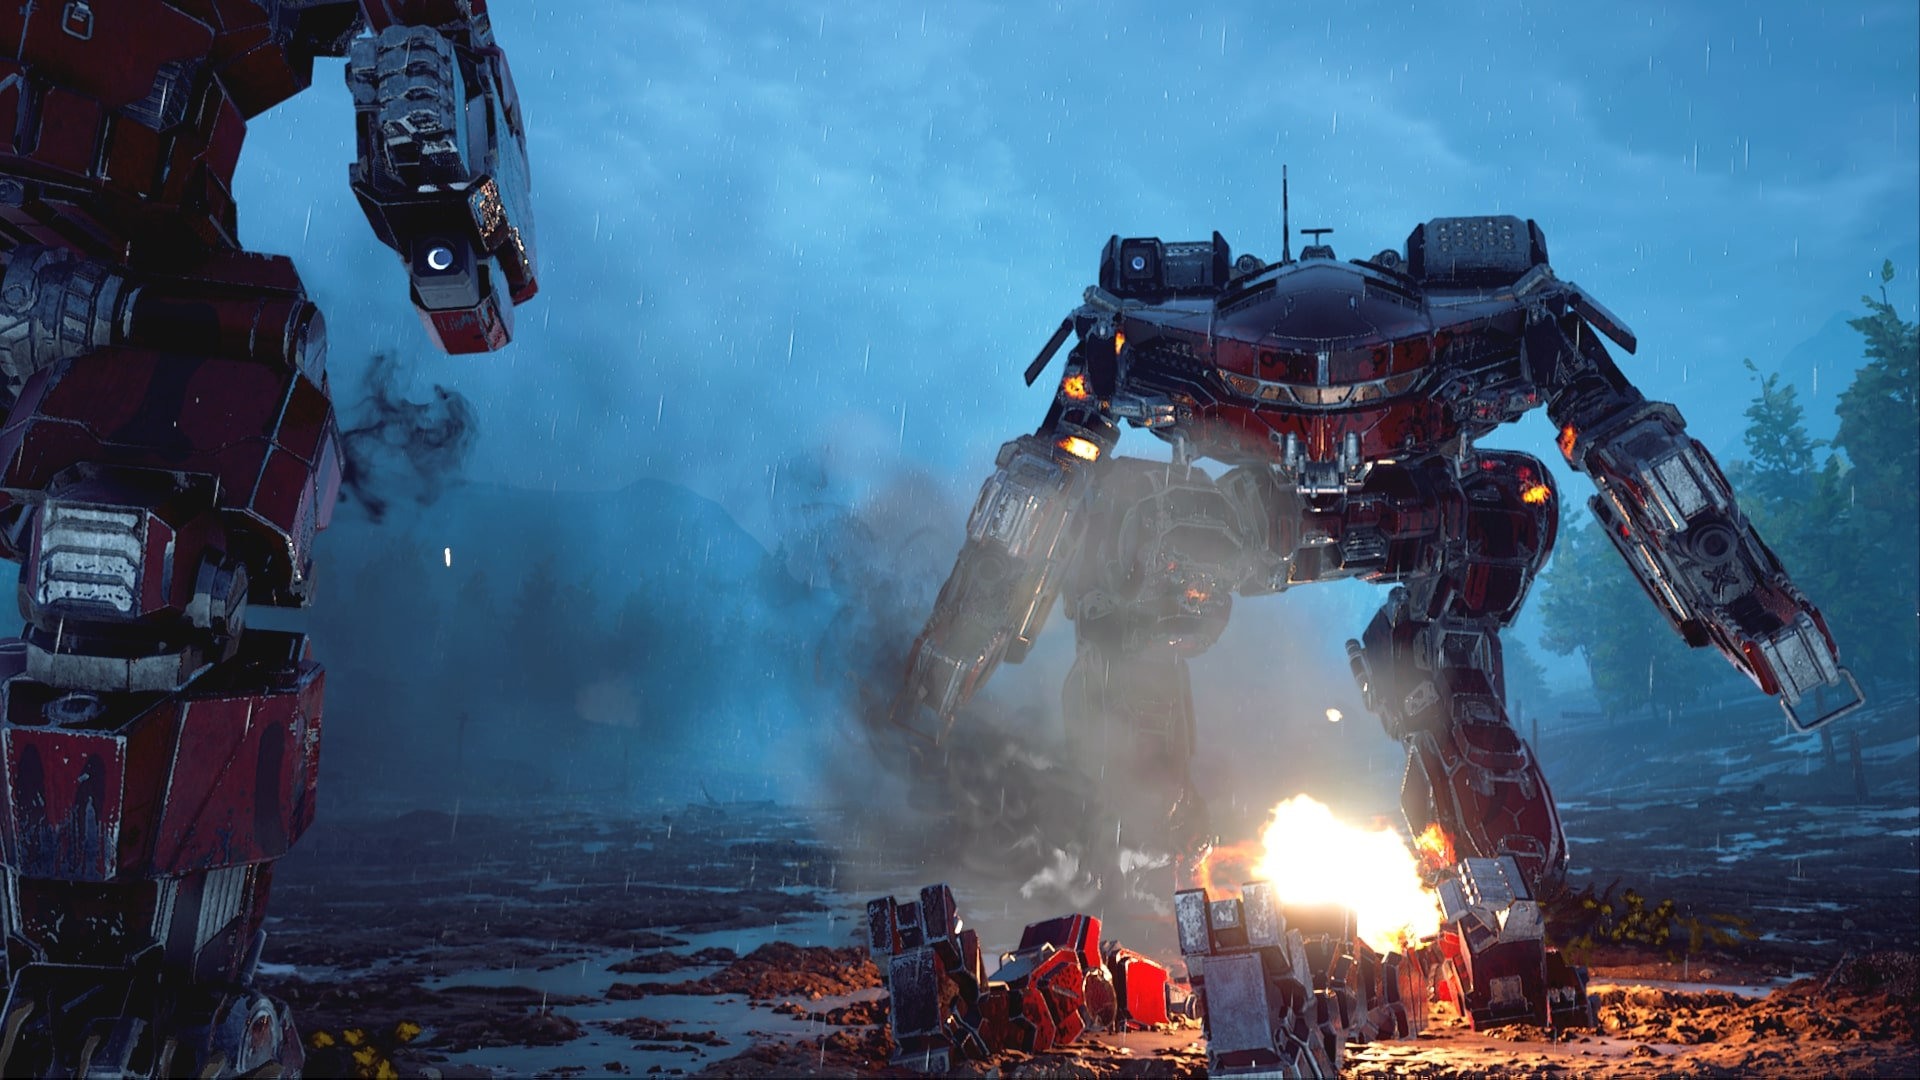 Photo of MechWarrior 5 Is Building Giant Robots With Authenticity in Mind